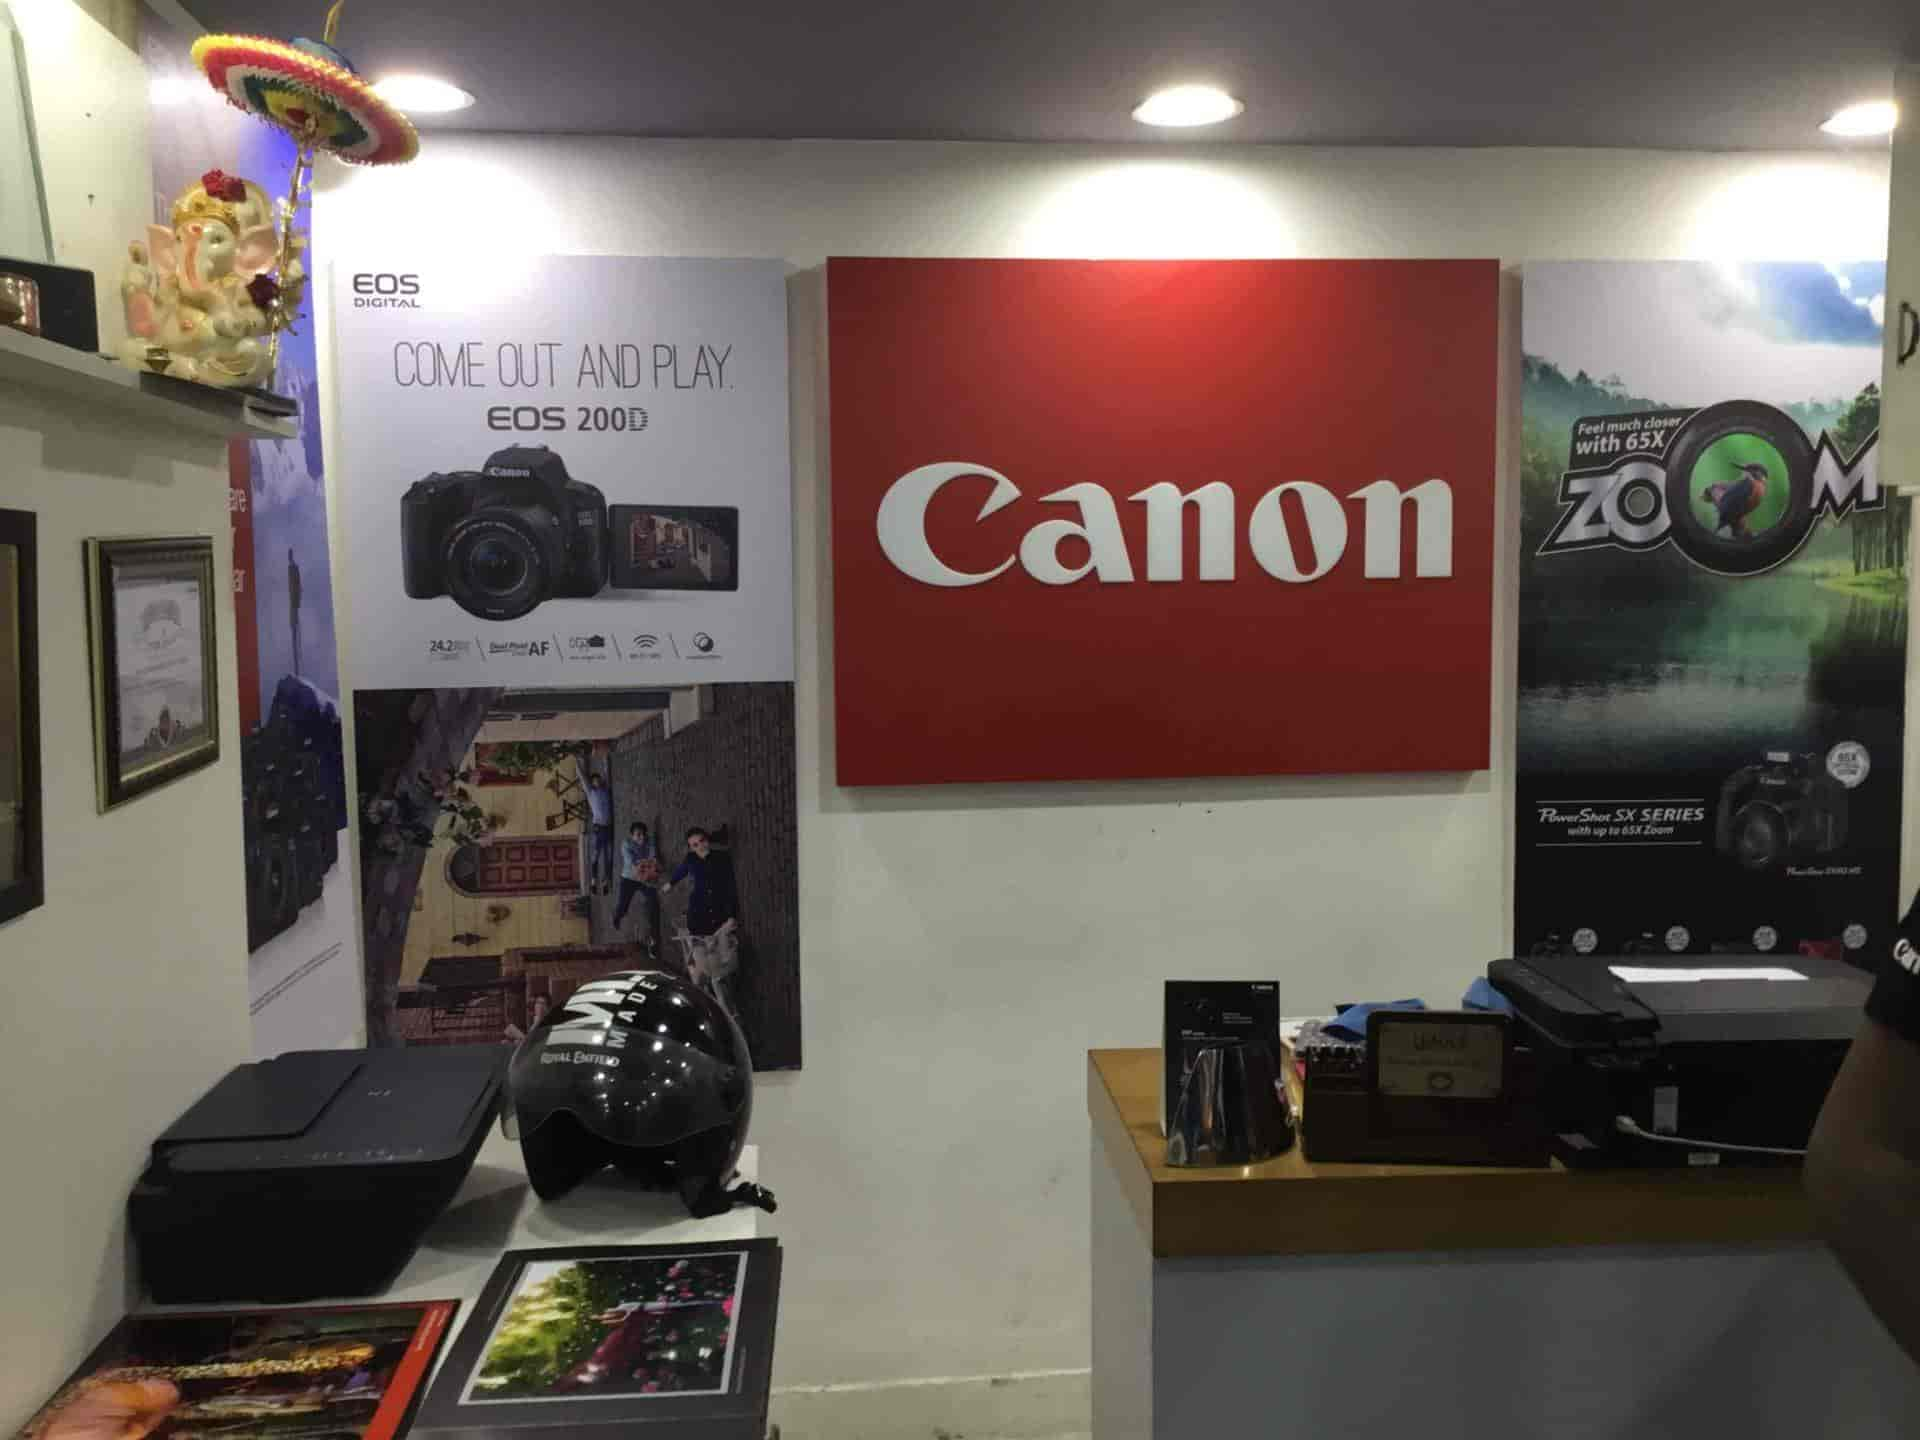 Cannon Image Square, Anna Nagar - Camera Dealers in Chennai - Justdial